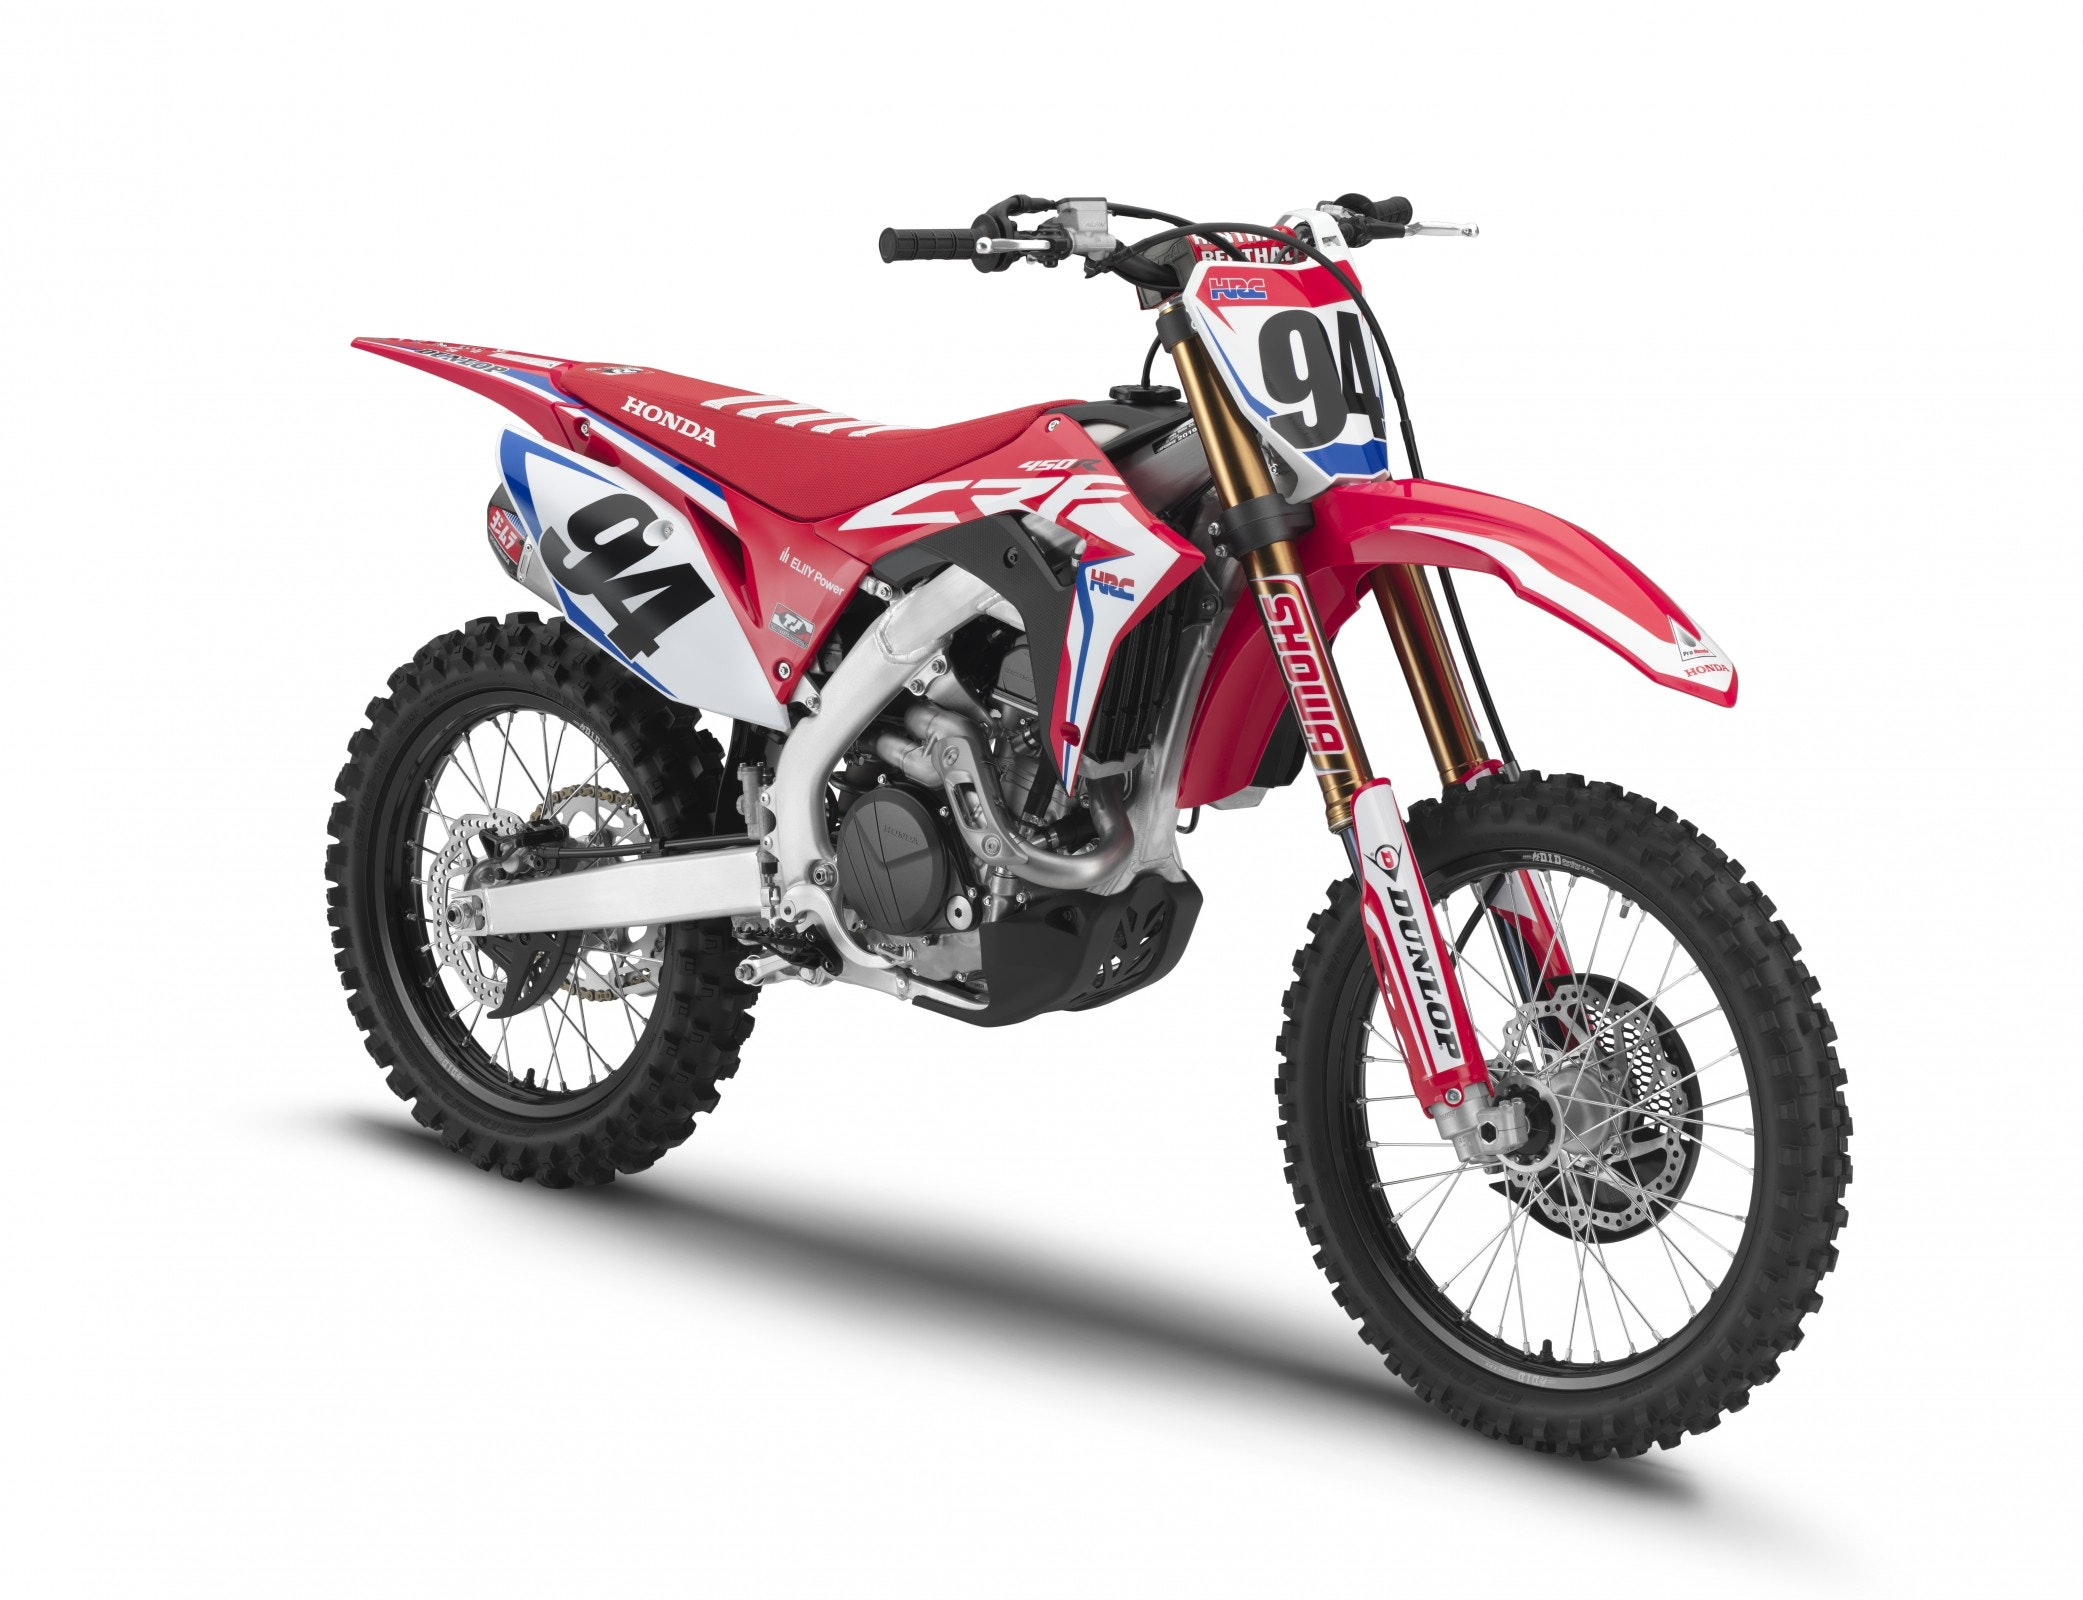 19_Honda_CRF450R_WE_FR34